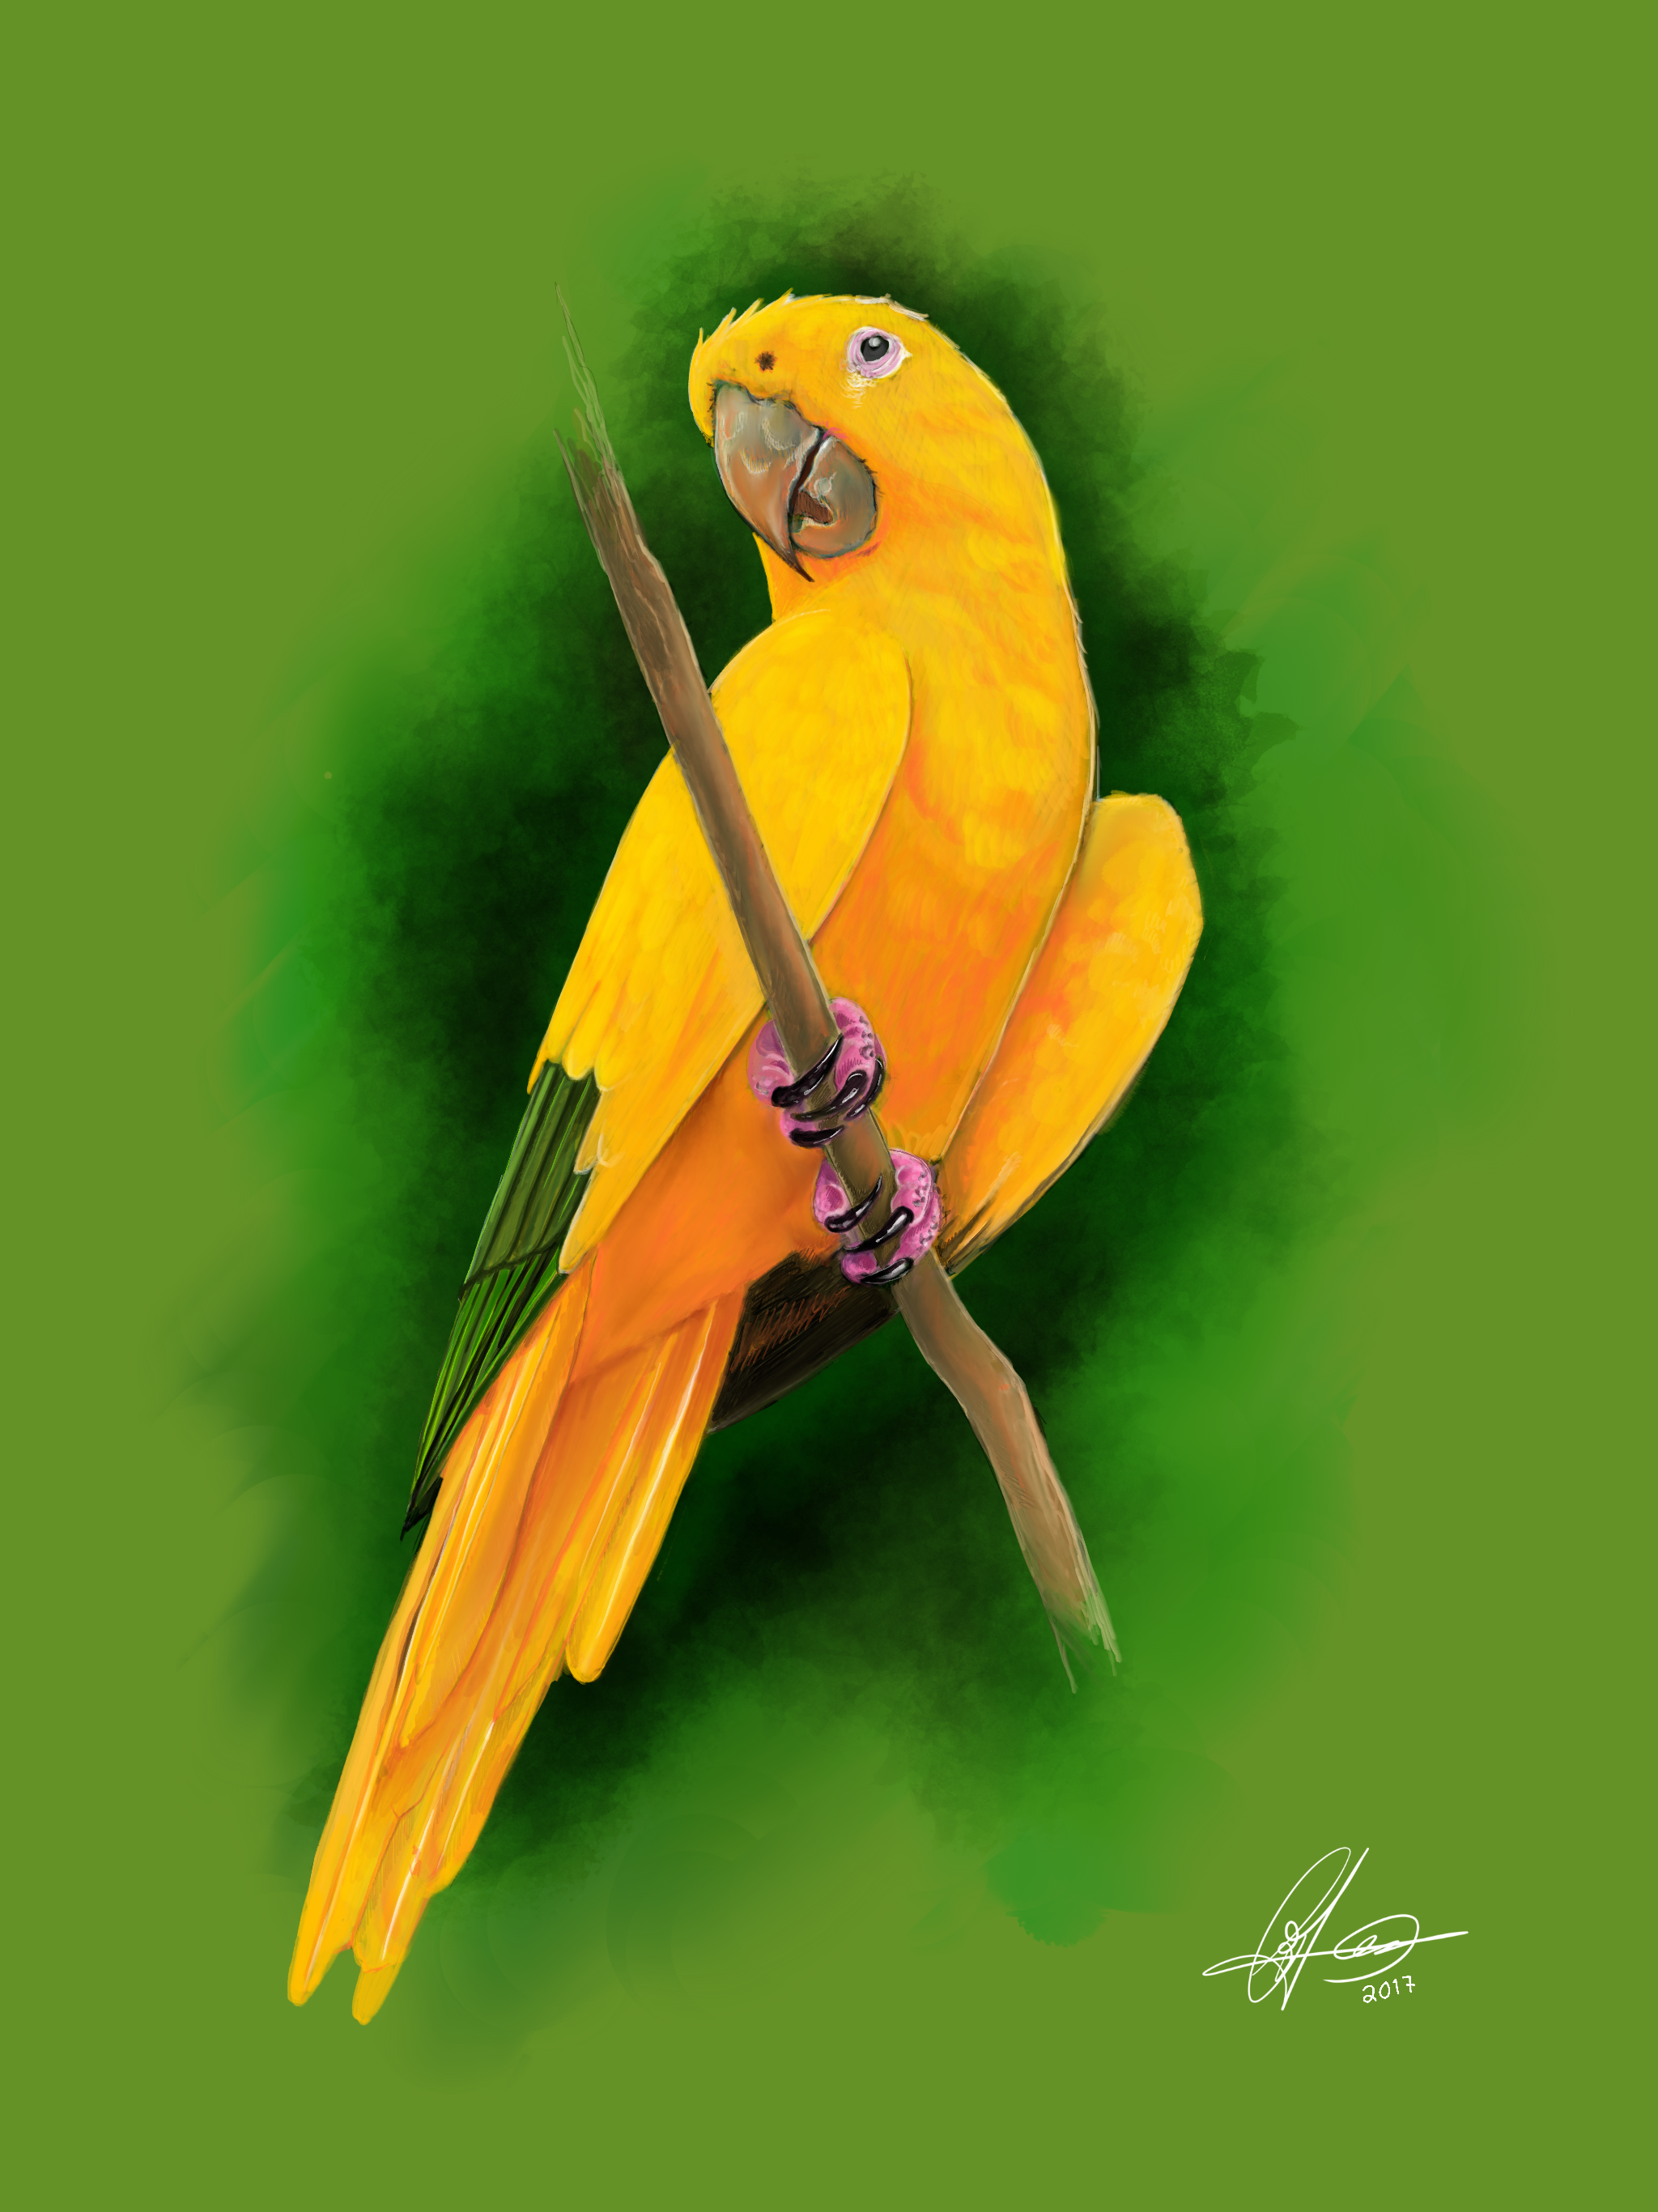 Parakeet. Digital art